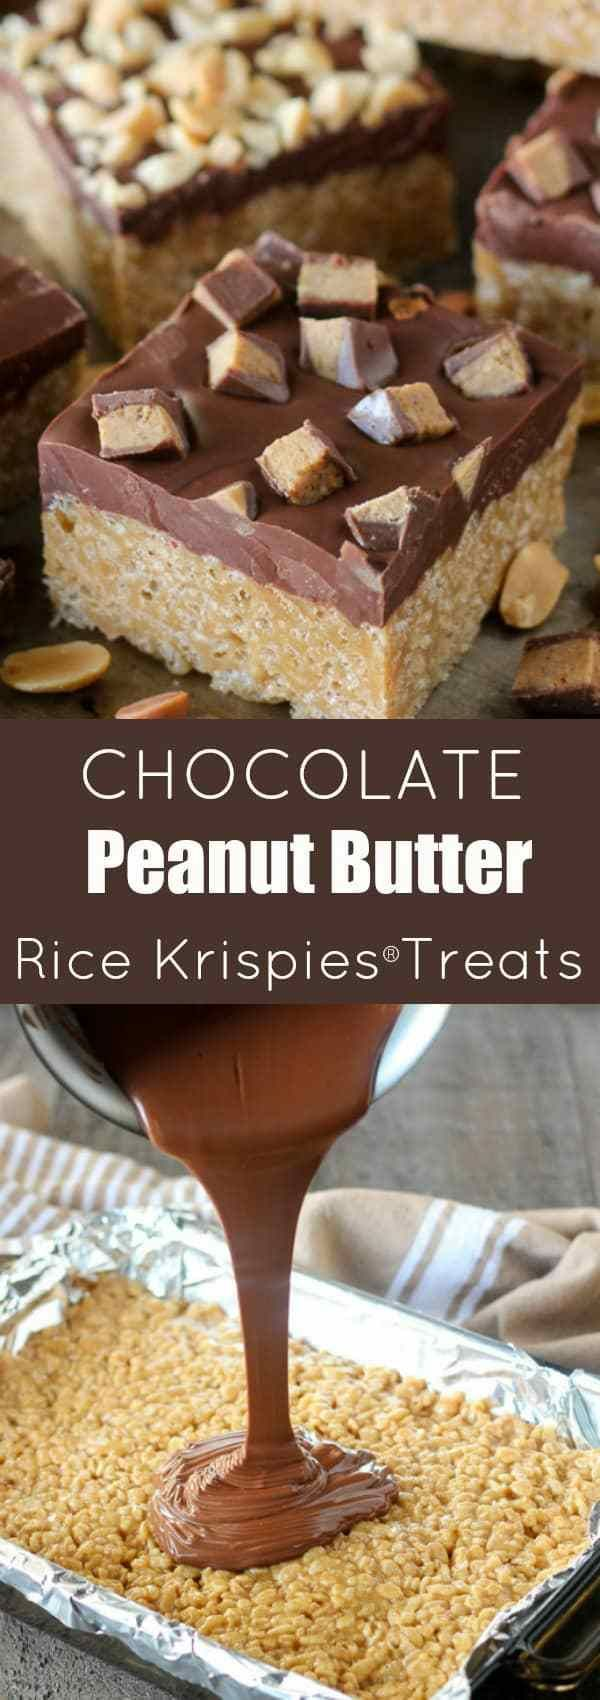 Chocolate Peanut Butter Rice Krispies® Treats - Chewy peanut butter Rice Krispies® bars covered with a chocolate-butterscotch topping and finished with chopped peanuts or peanut butter cups. An easy no-bake recipe that is loved by adults and kids alike! #RiceKrispies